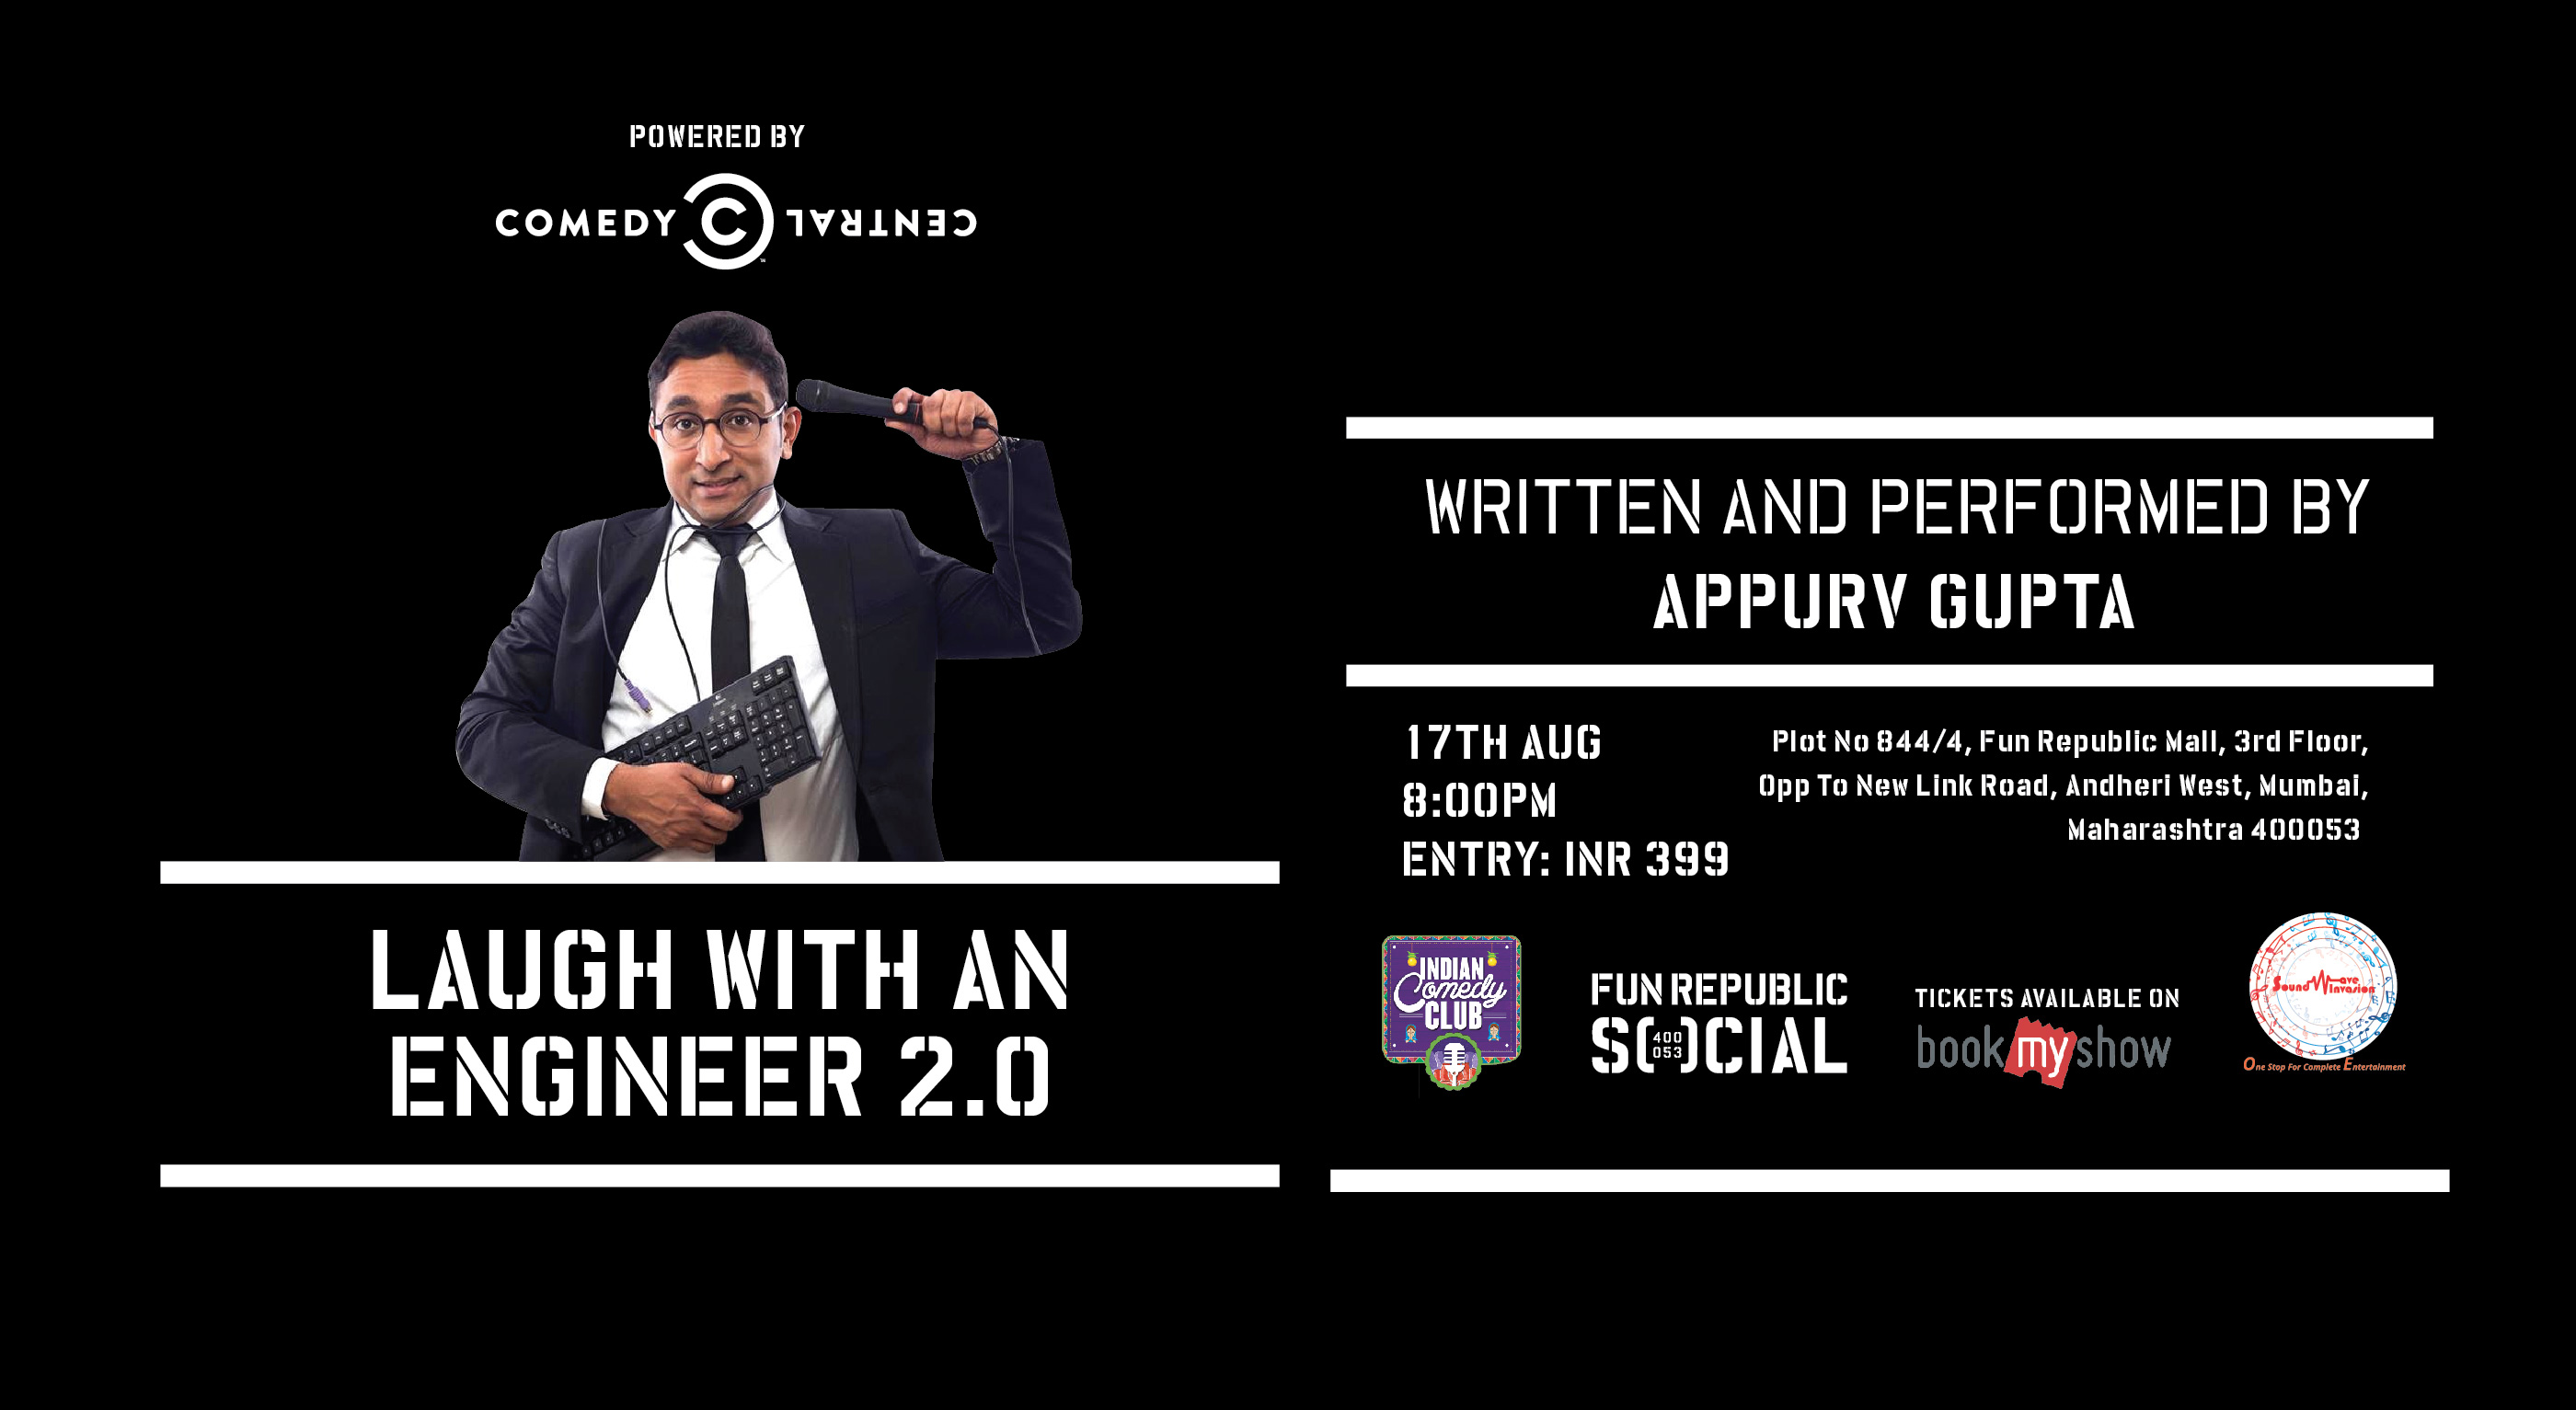 Laugh with an Engineer 2.0 at Fun Republic Social